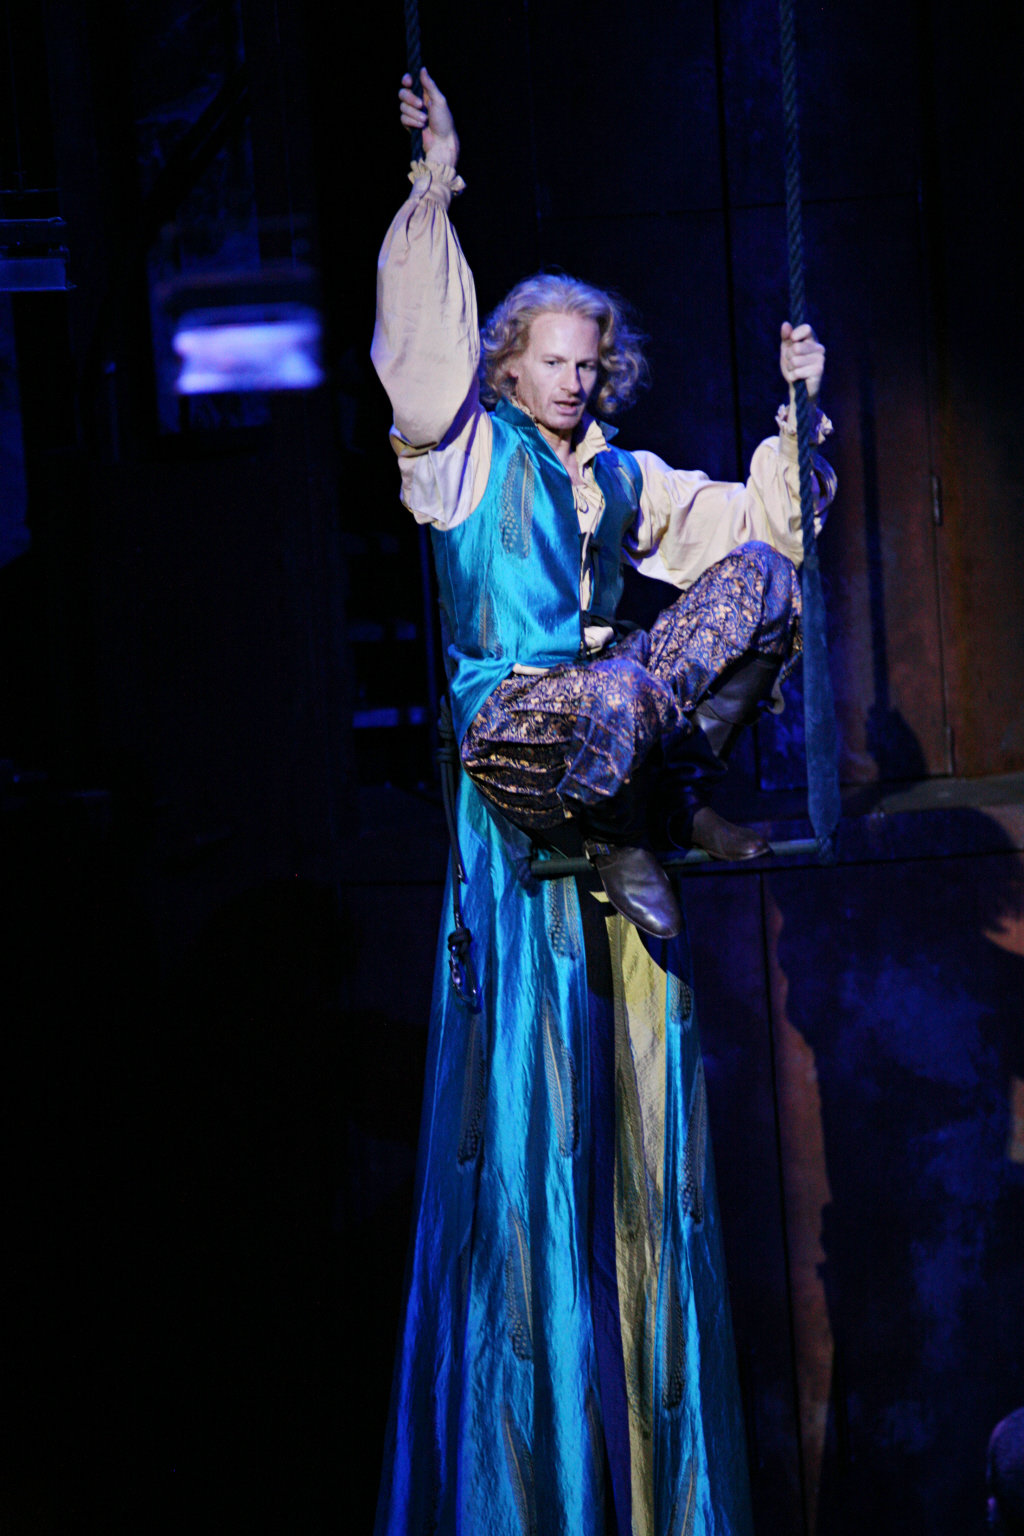 The Dauphin, dressed in long blue silk robes, hangs from the ceiling on a trapeze, looking down in the 2007 production of Henry V